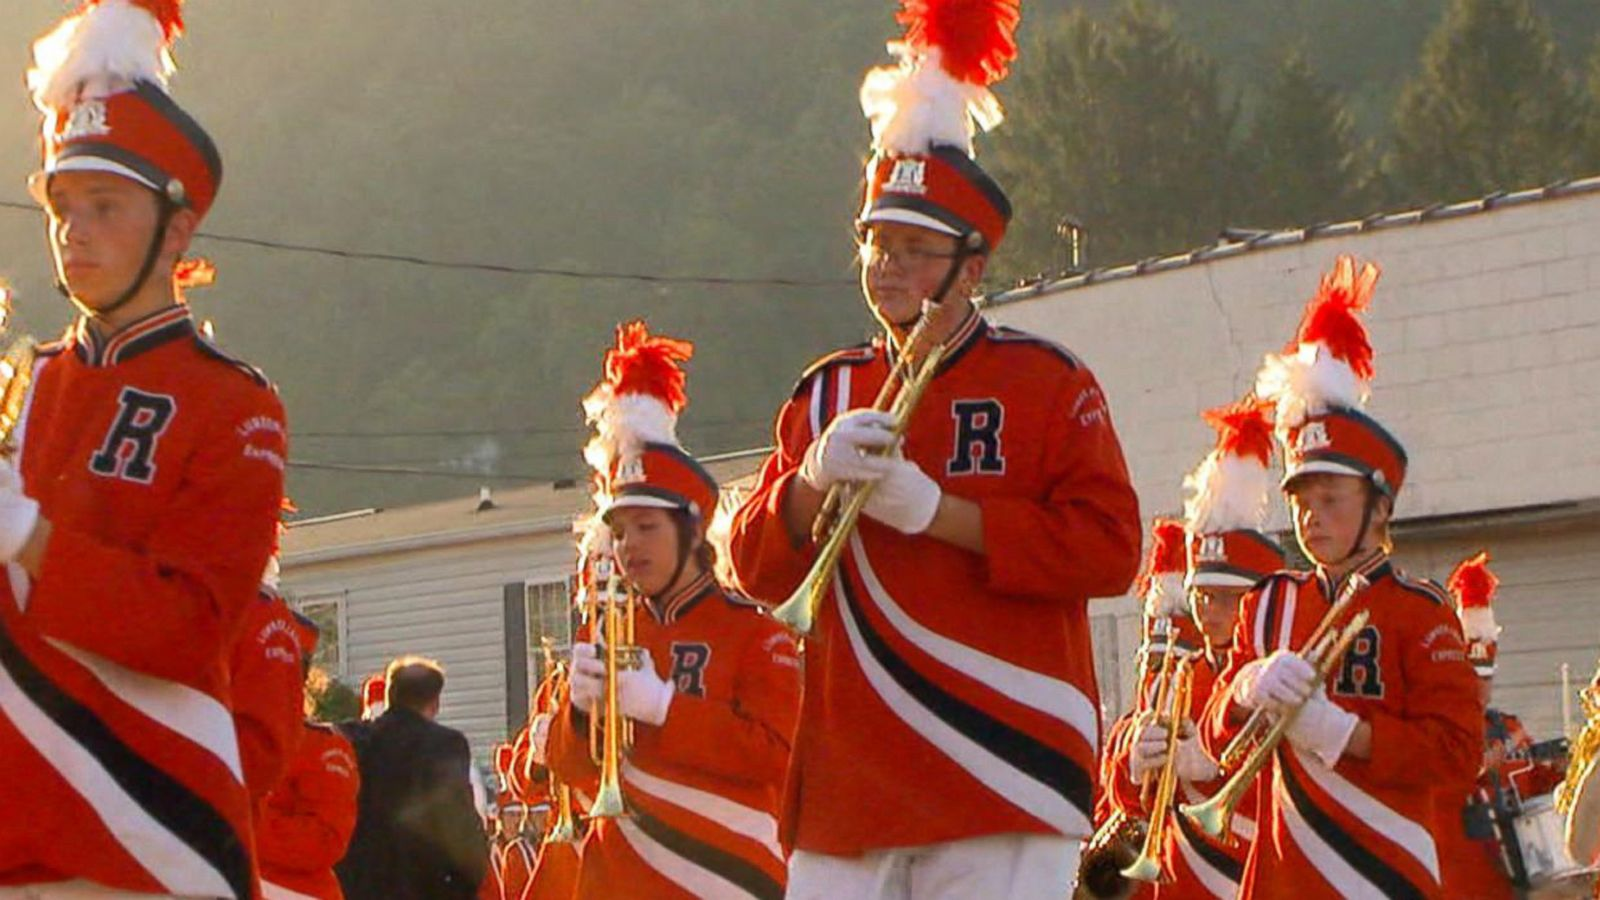 VIDEO: Marching Band's Tune Lifts Up Flooded Town